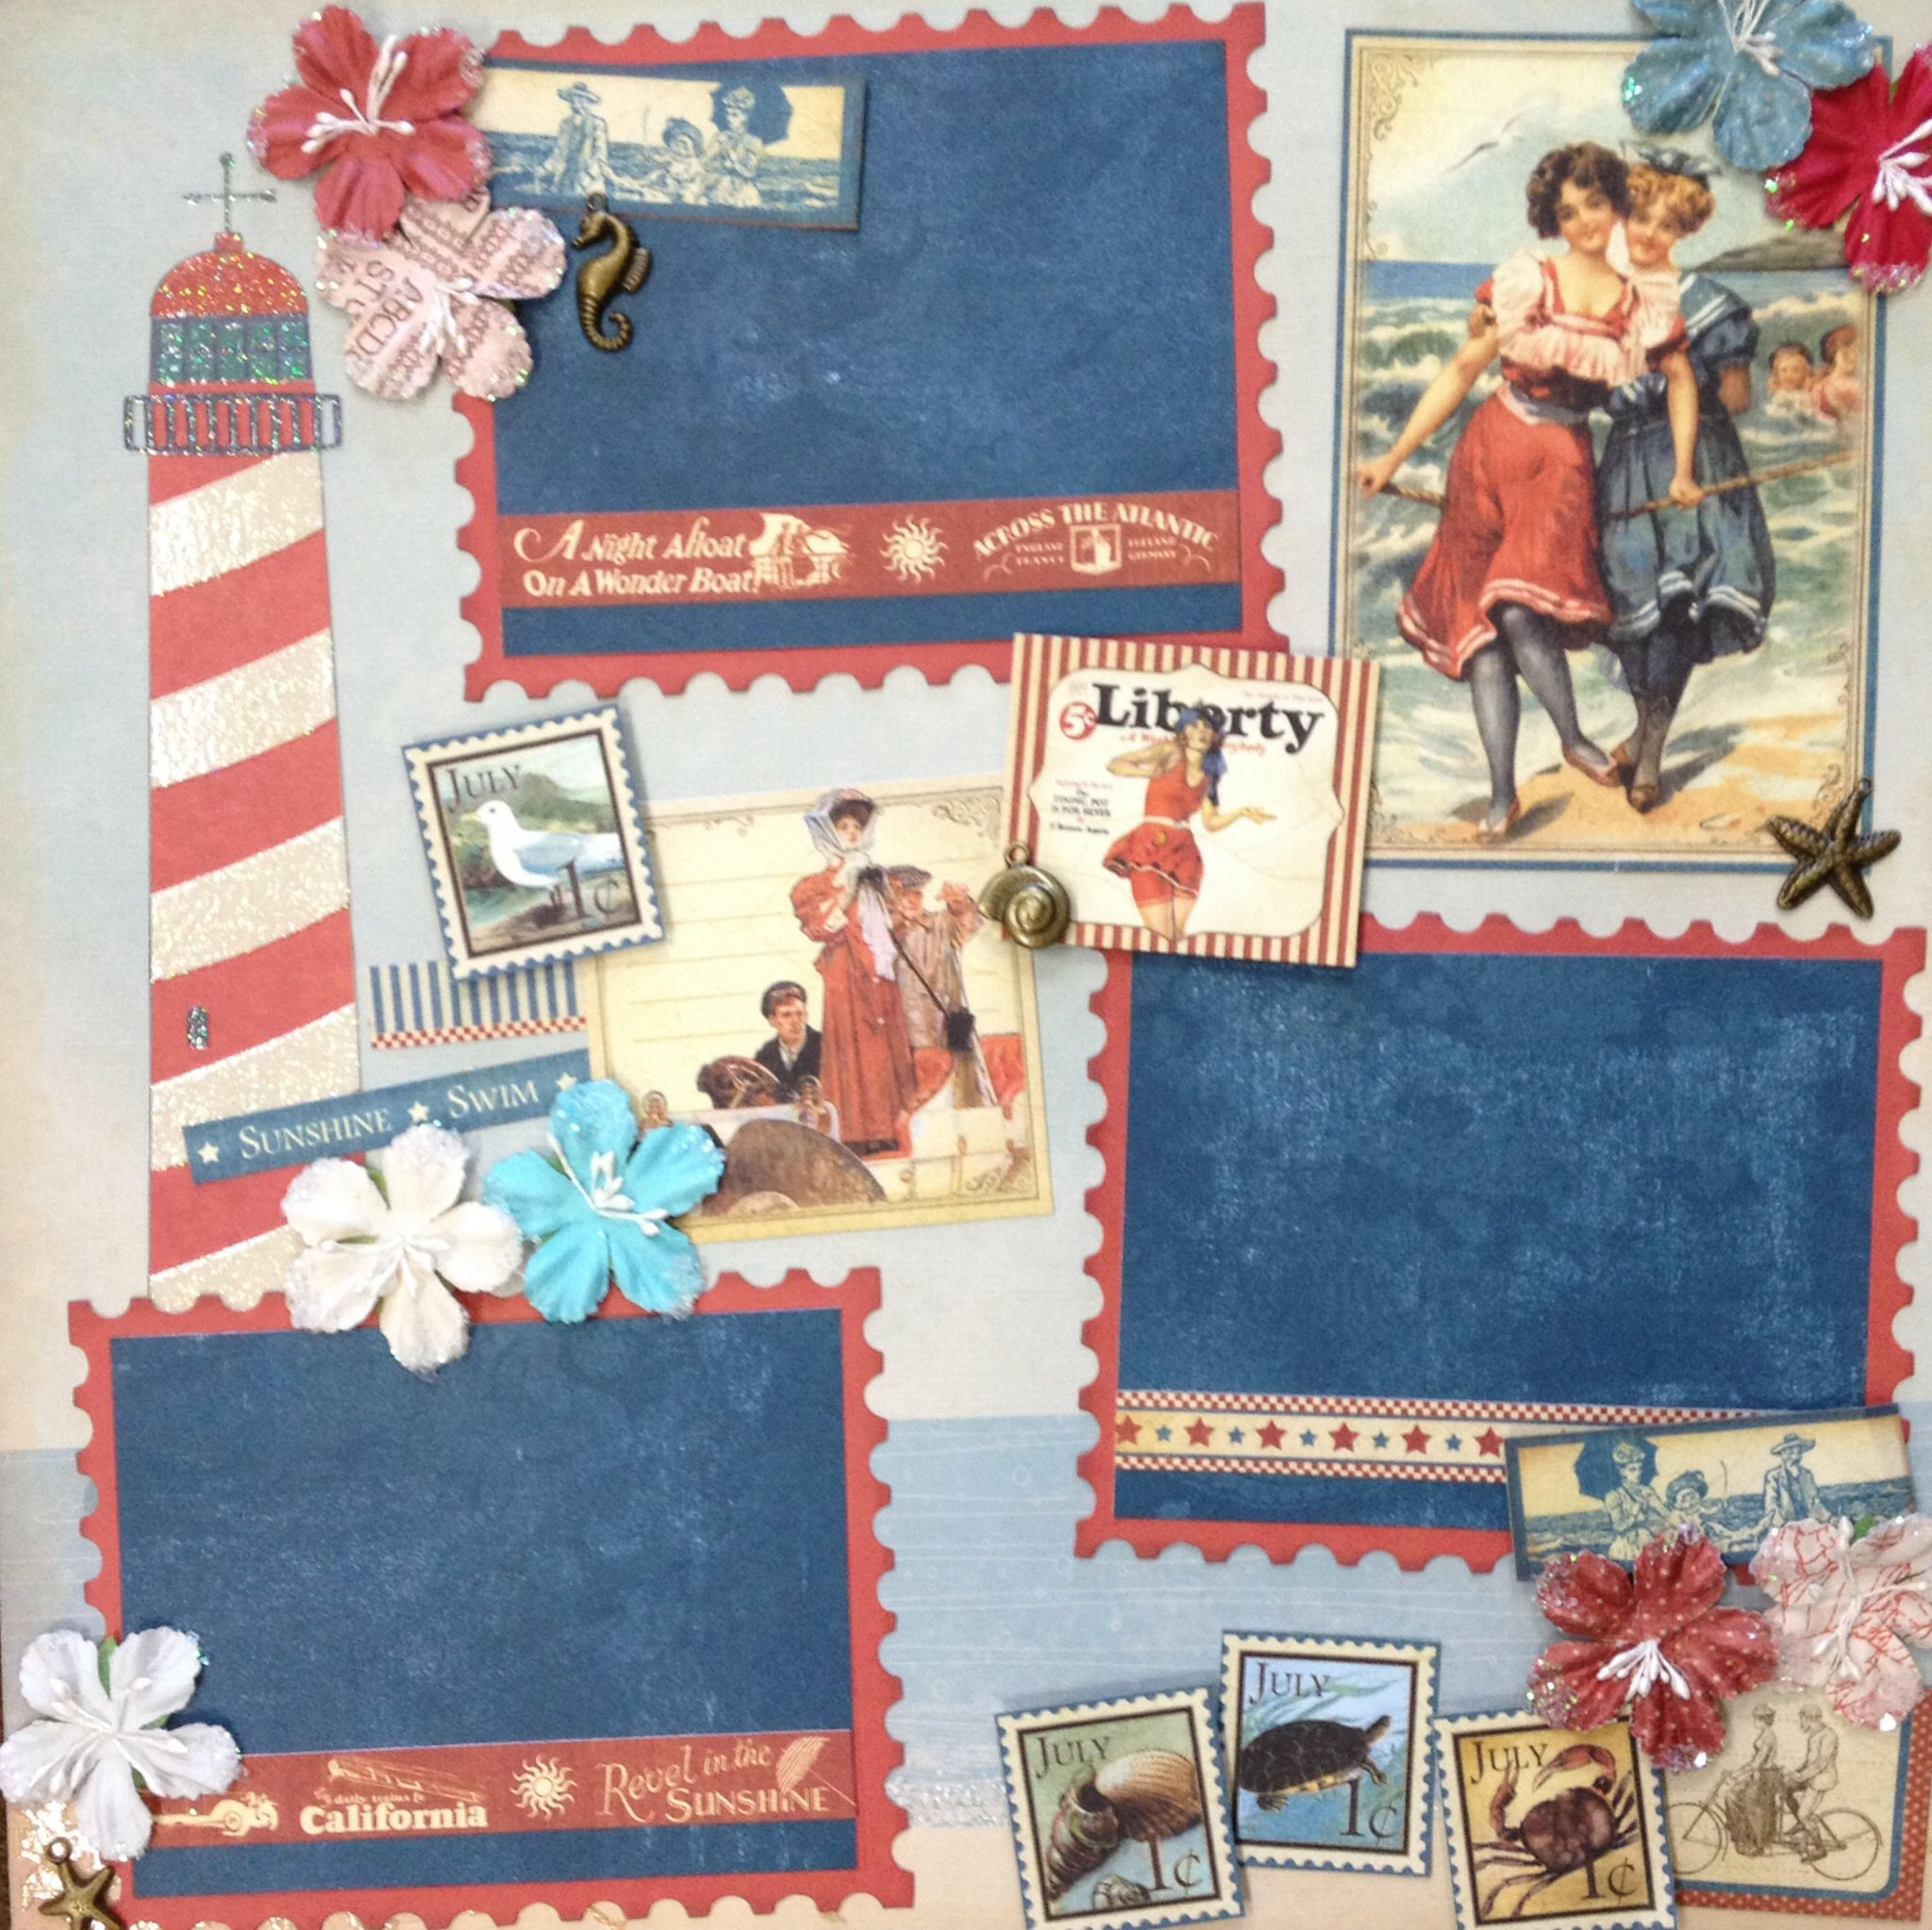 Graphic 45 July 12x12 scrapbook page layout using the Place in Time Collection. We also used Best Creation's paper, Prima flowers, K Co charms, and Sizzix postage stamp die.